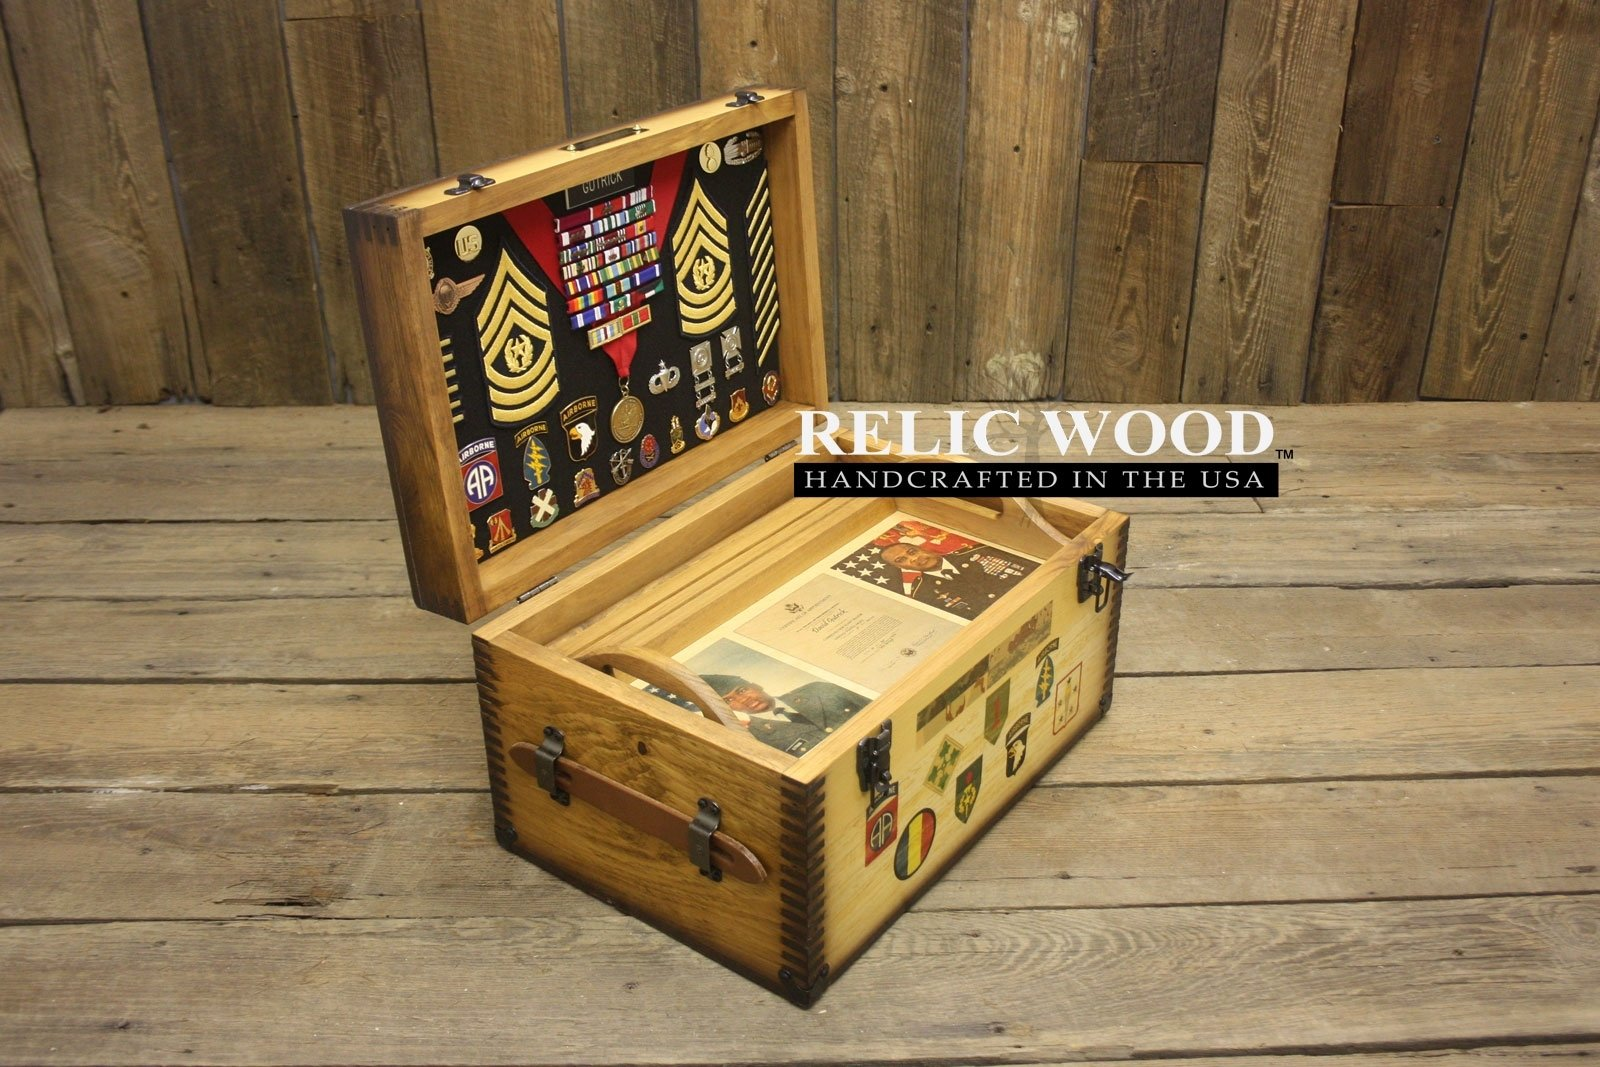 us military retirement gift ideas showcase - relic wood